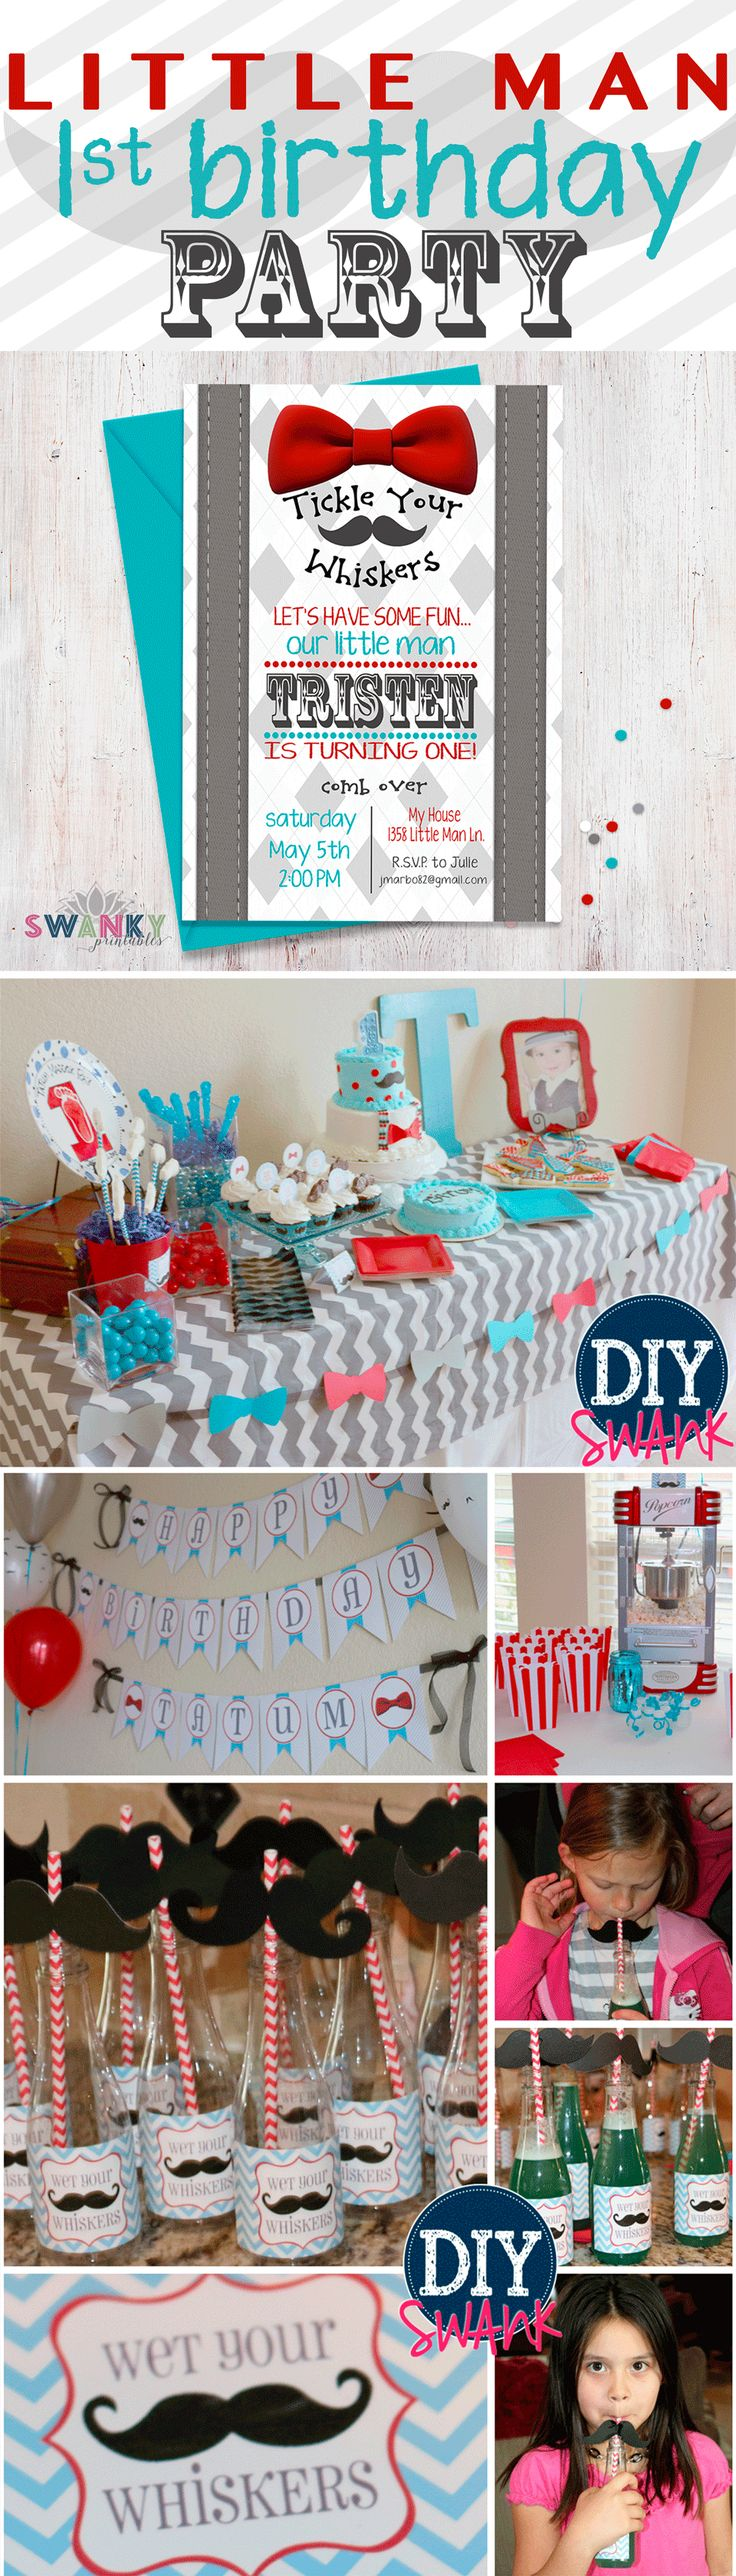 Little Man First Birthday Party | Bowtie birthday party, Party ...